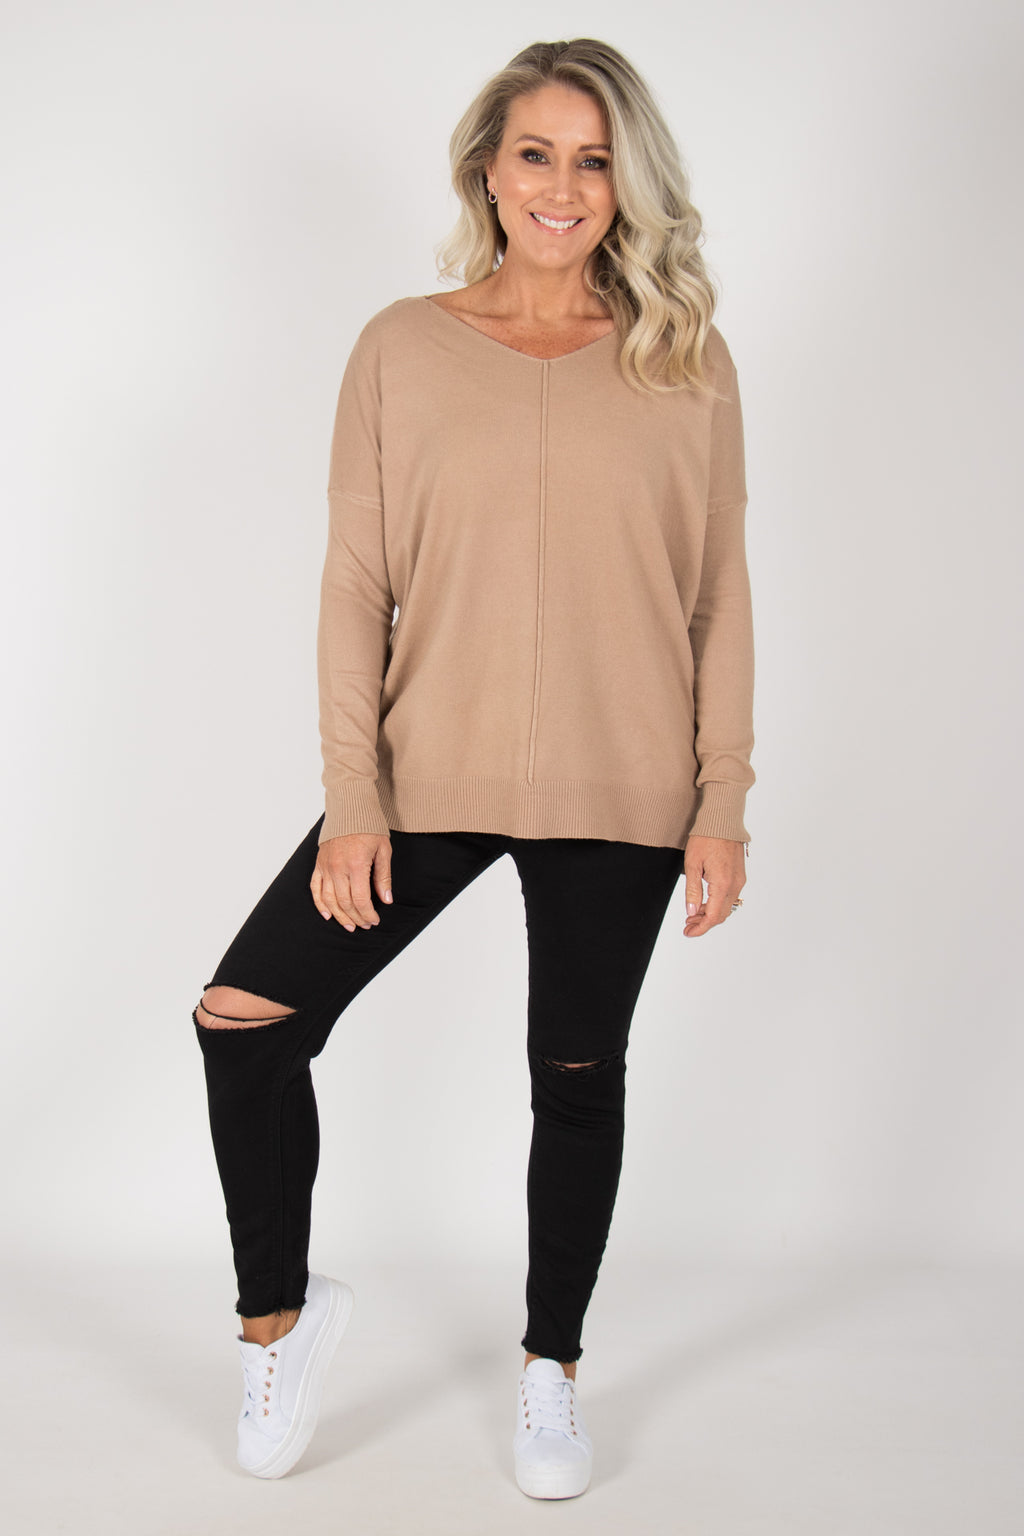 Jordene Knit Top in Mocha